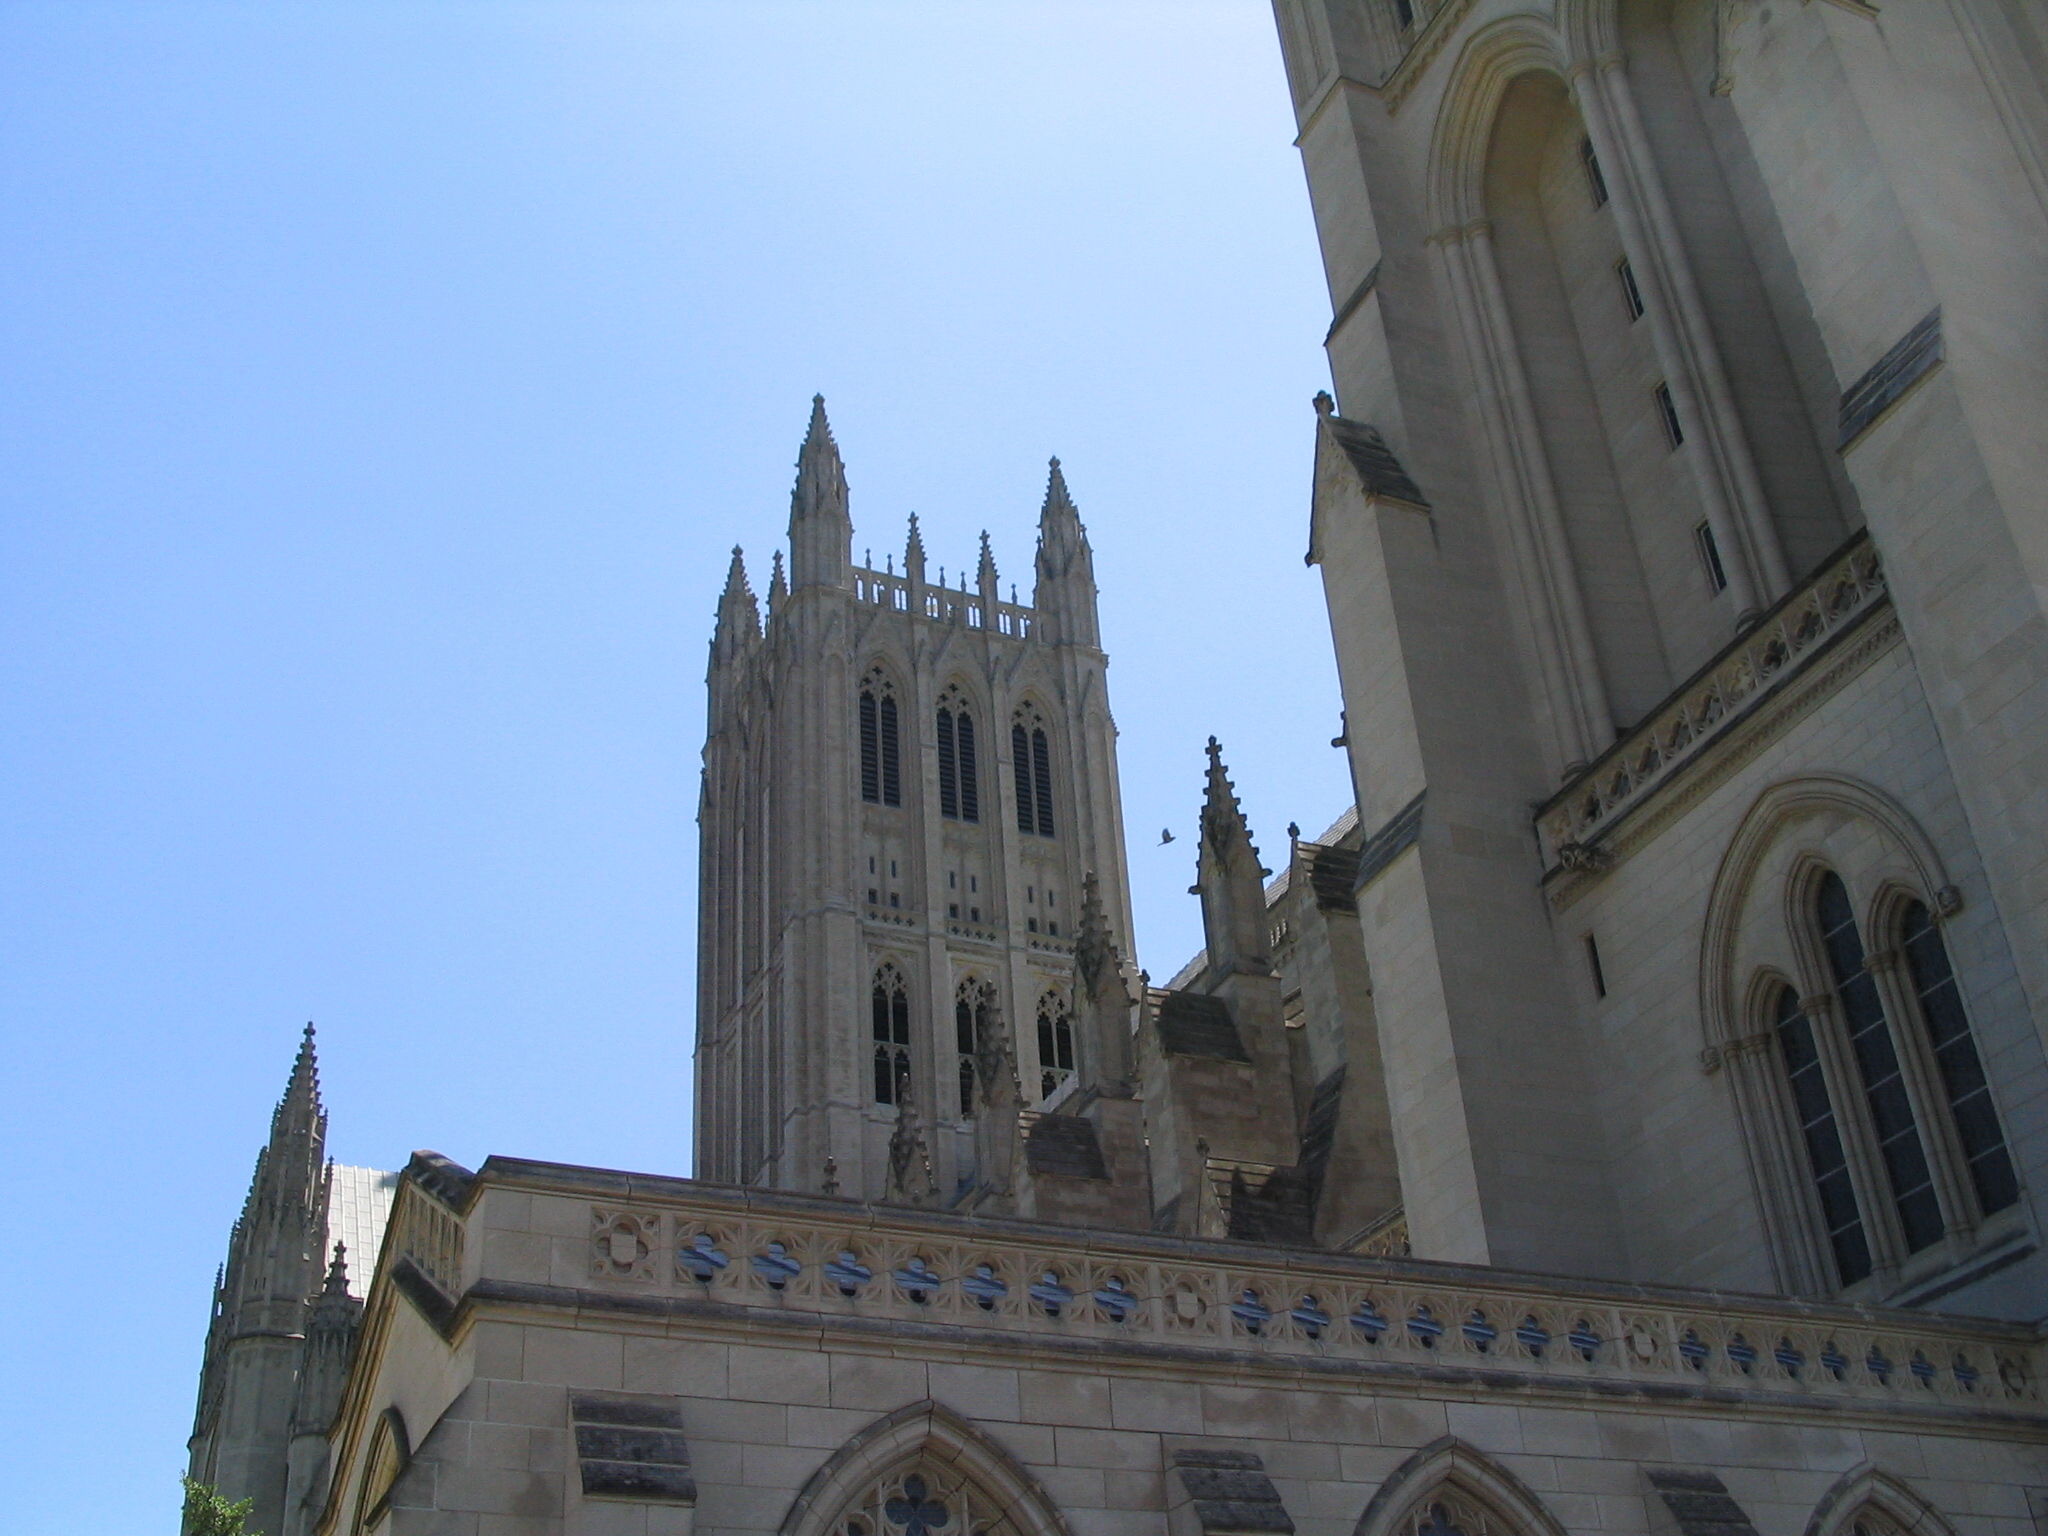 National Cathedral View of Towers over North Transept